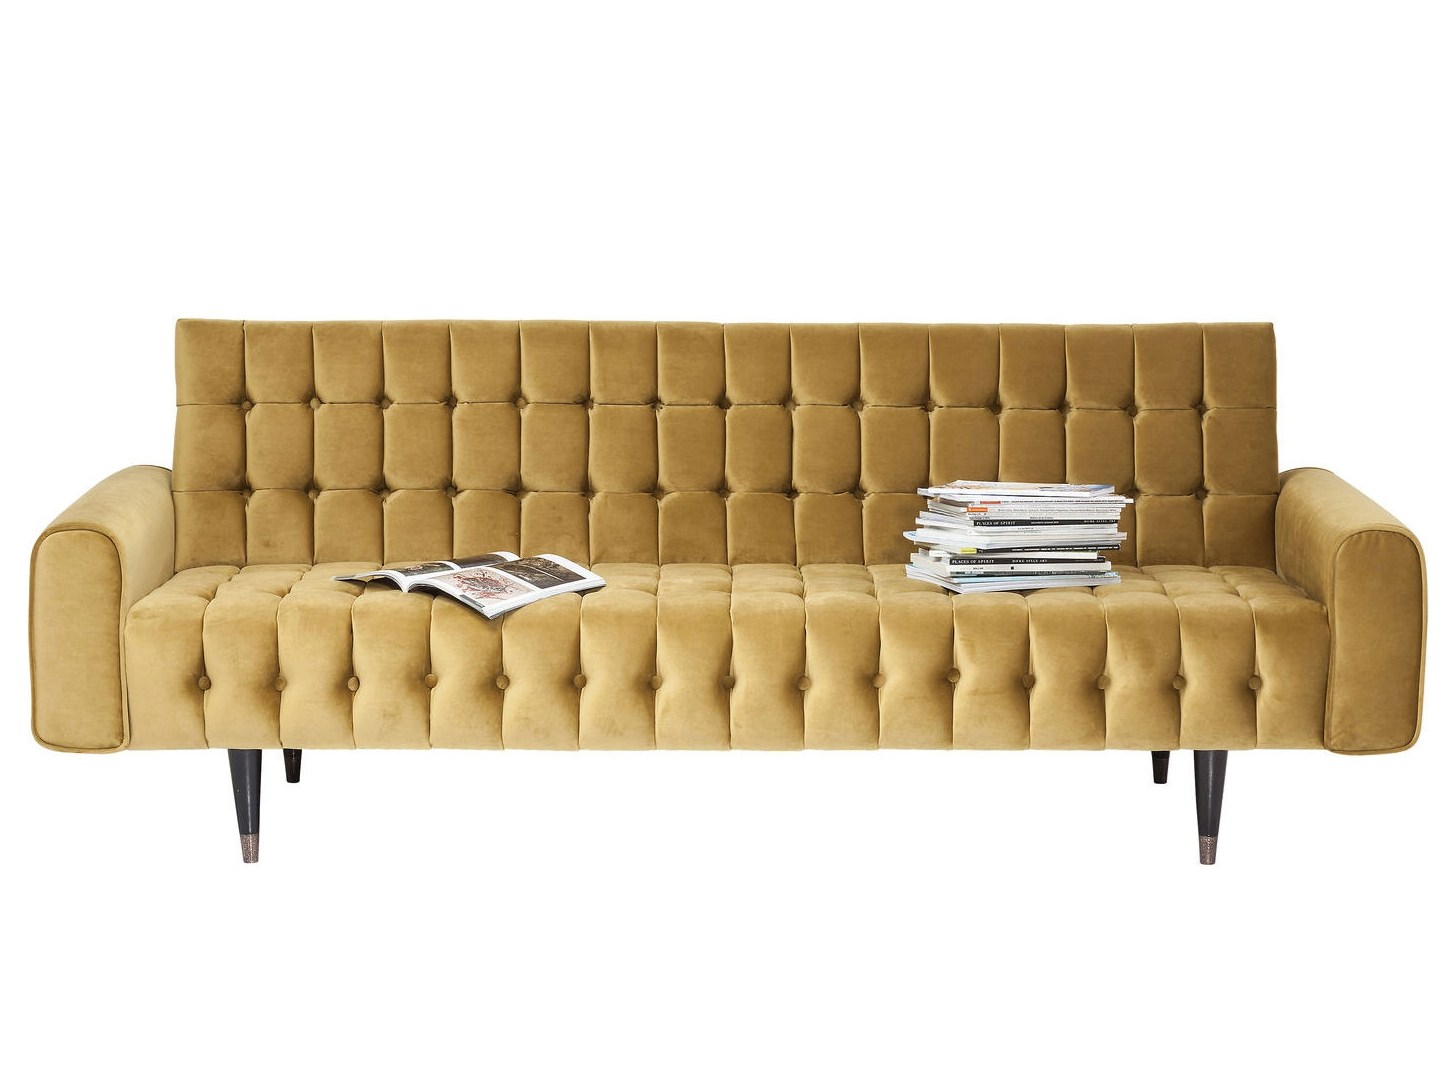 Tufted 3 Seater Fabric Sofa Milchbar Honey By Kare Design